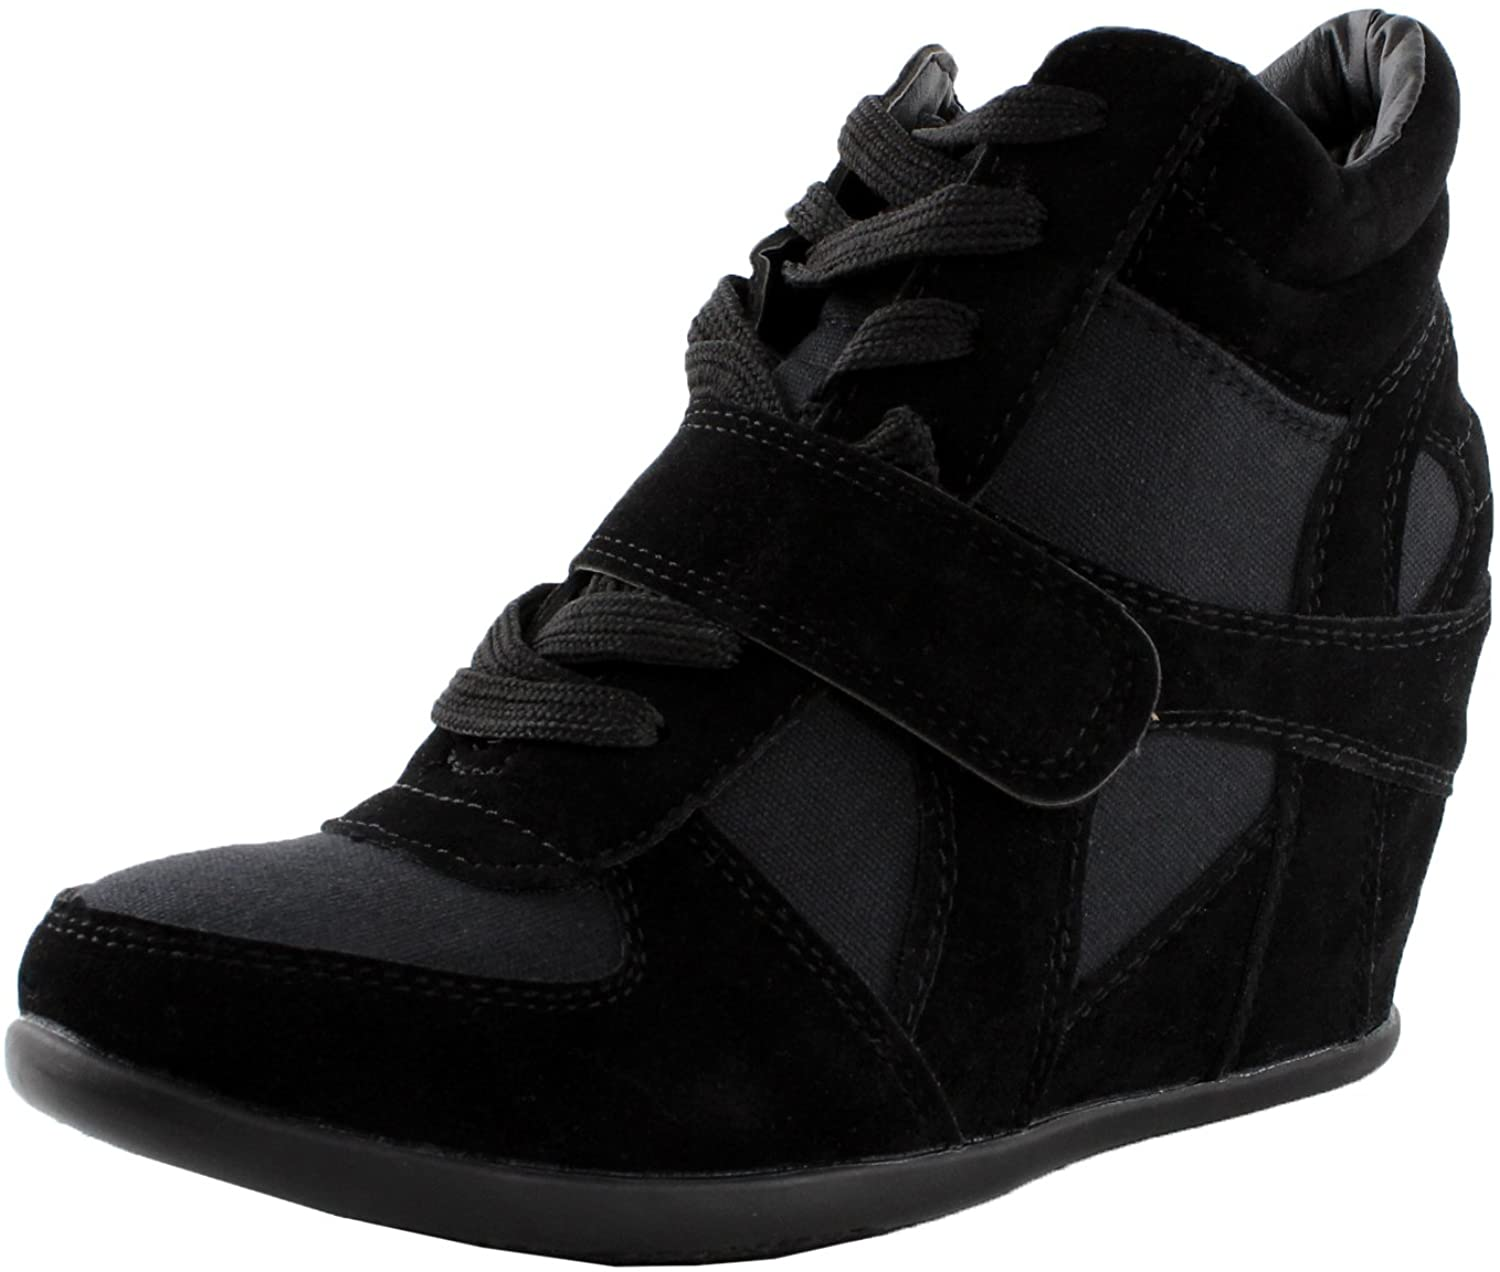 Top Moda SAMMY-40 High Top Velcro Womens Hidden Wedge Sneaker shoes